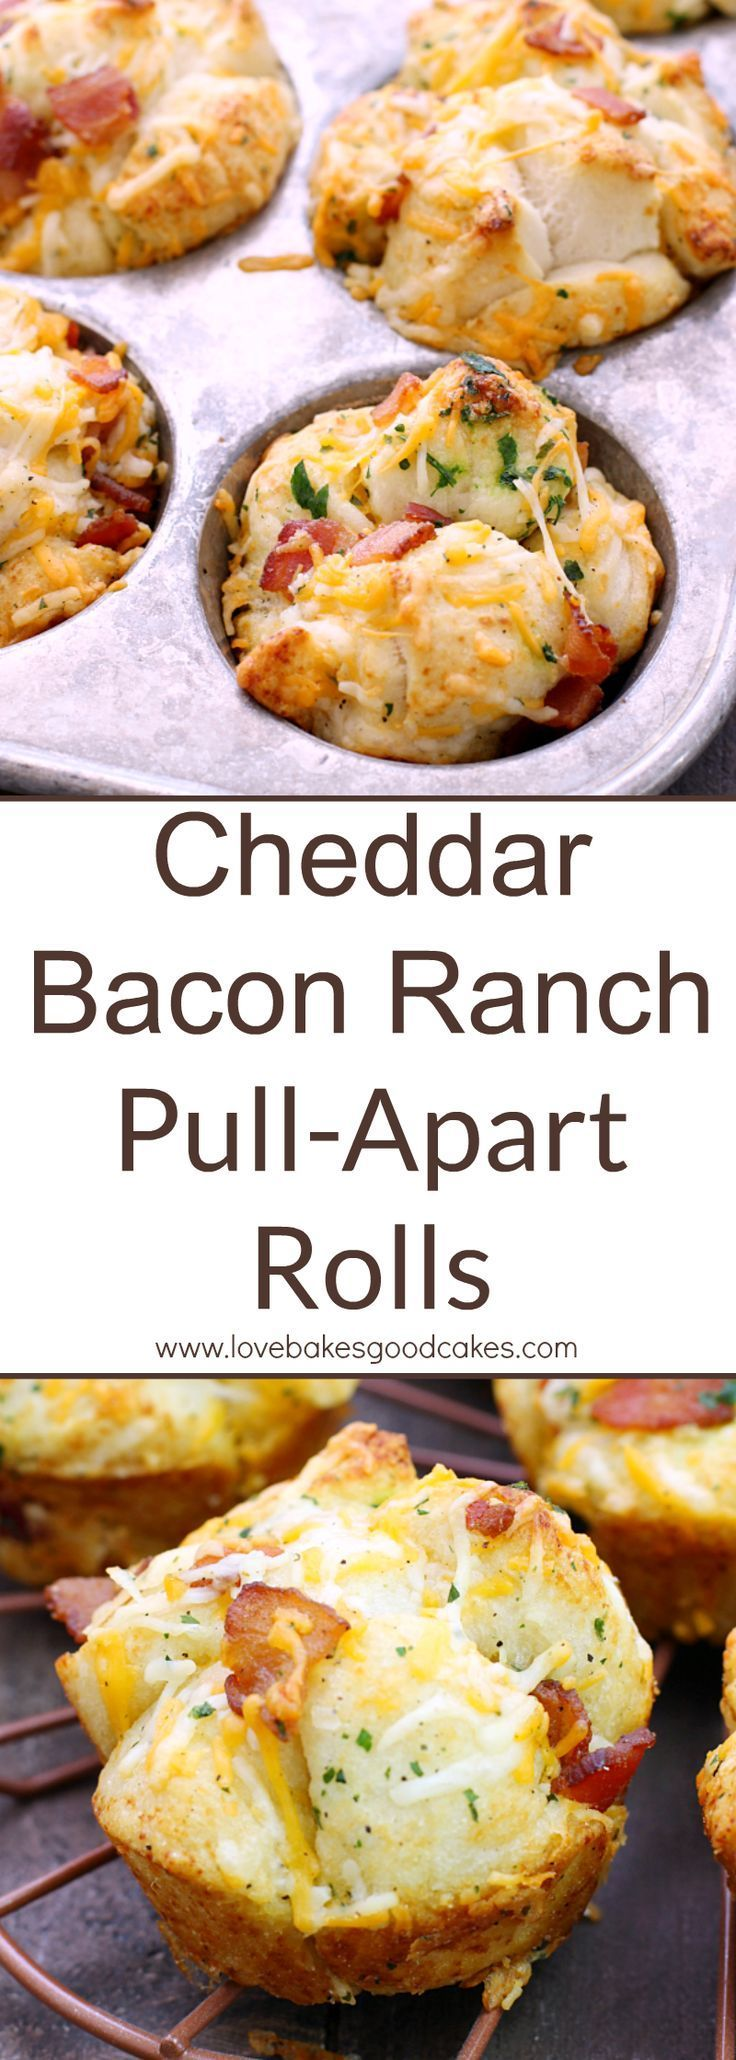 Make mealtime complete with these simple and delicious Cheddar Bacon Ranch Pull-Apart Rolls! Your family will LOVE them!